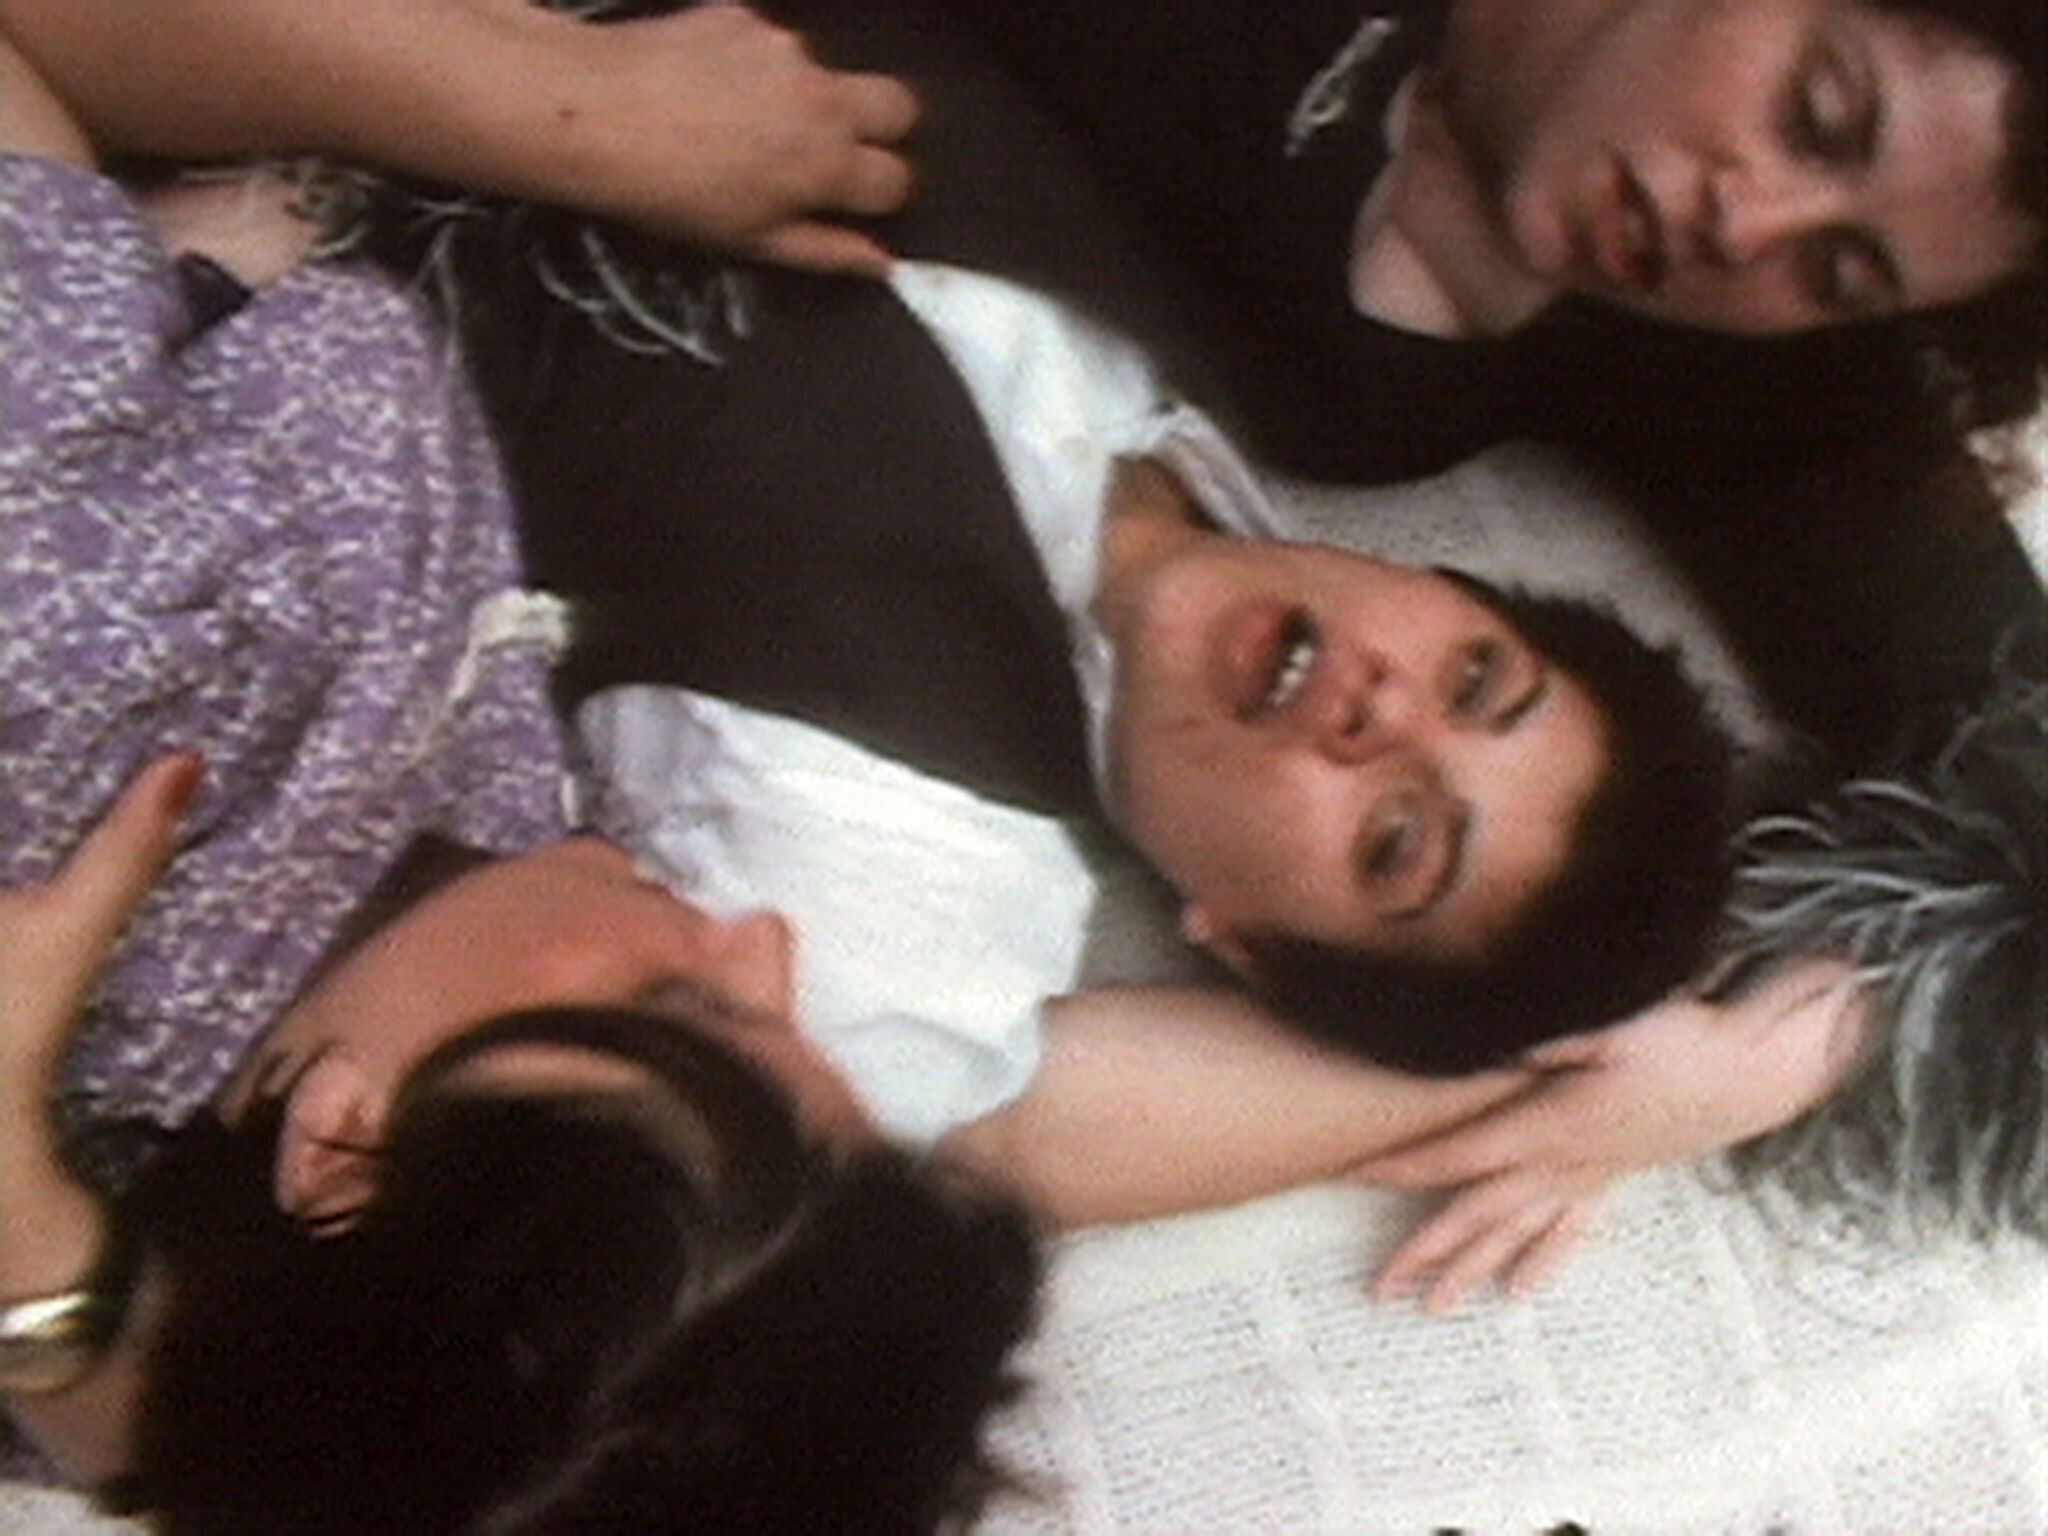 A film still of three people laying on a blanket.